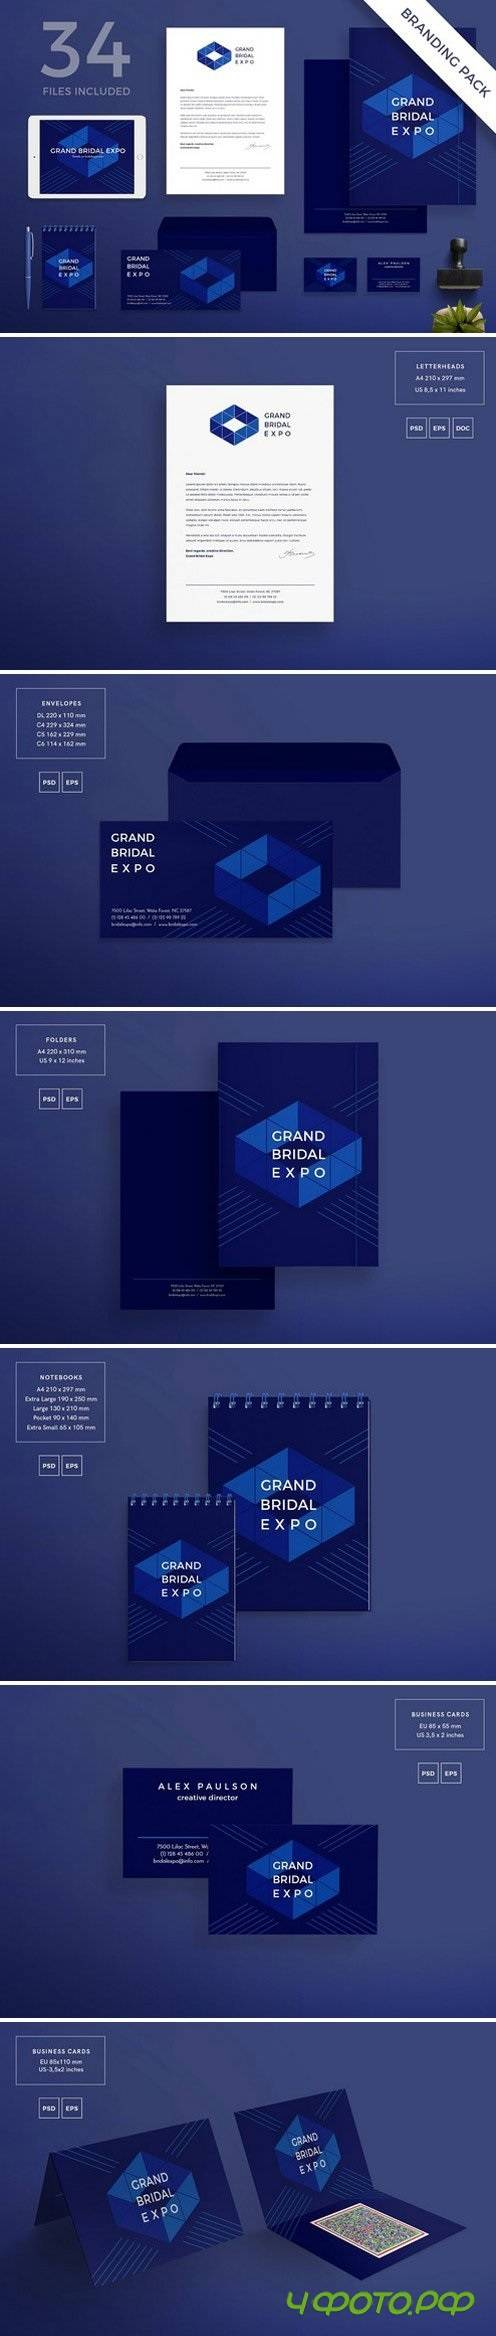 Branding Pack | Bridal Expo 1619483